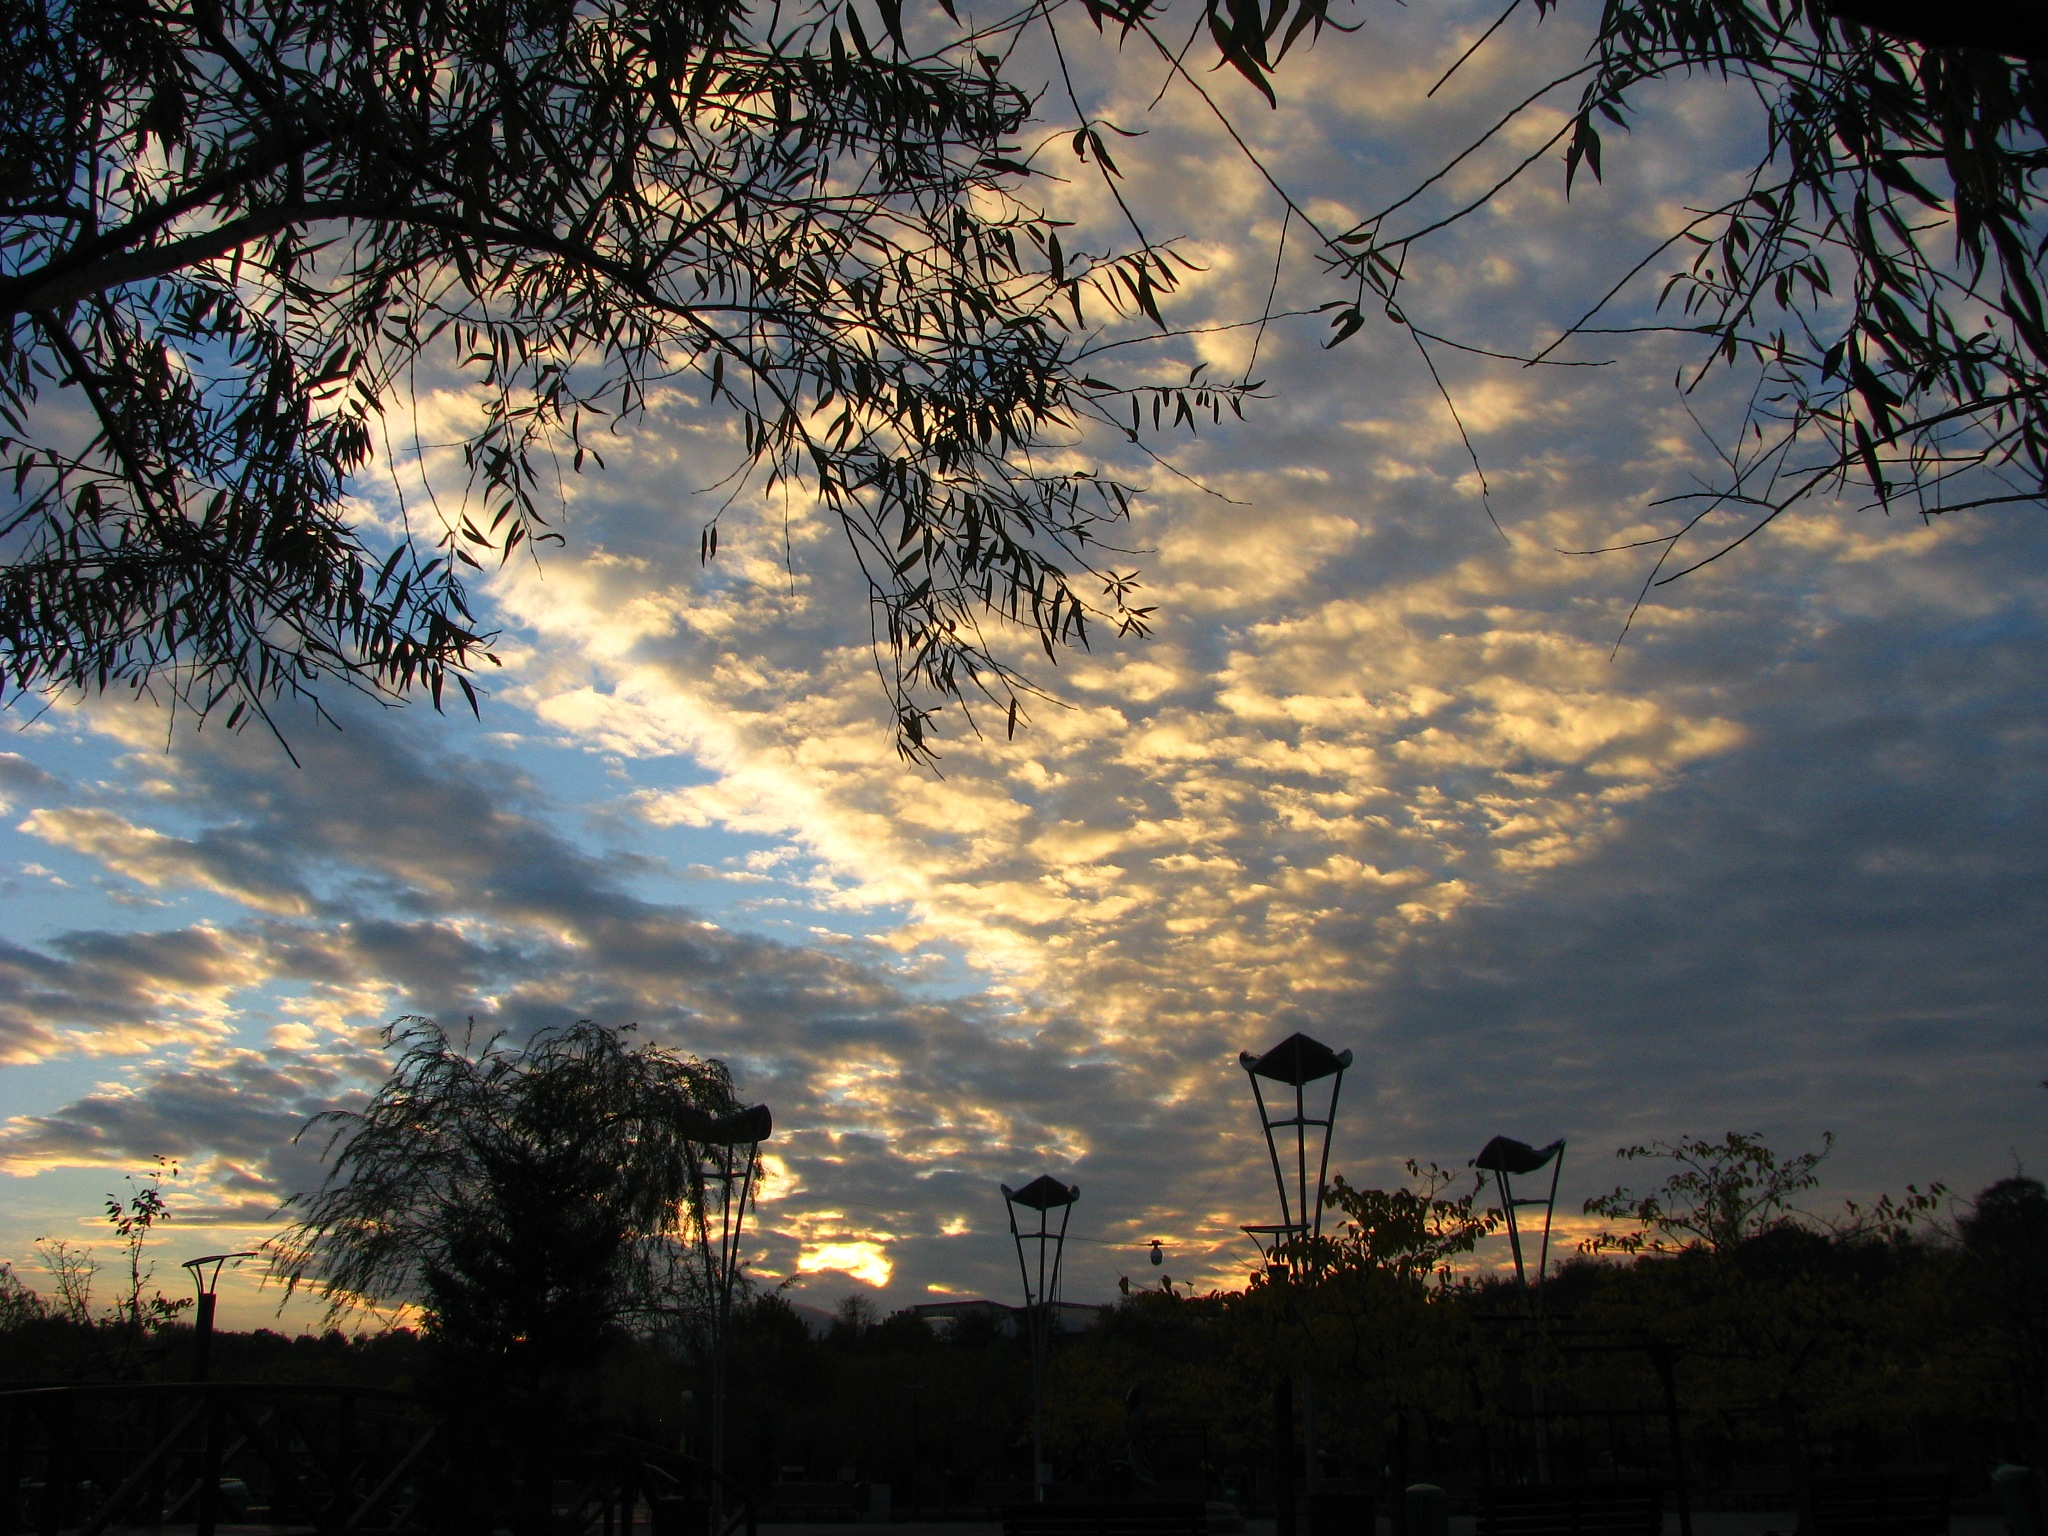 Altocumulus clpuds at the sunset, October 29, 2016 by Elena Maria